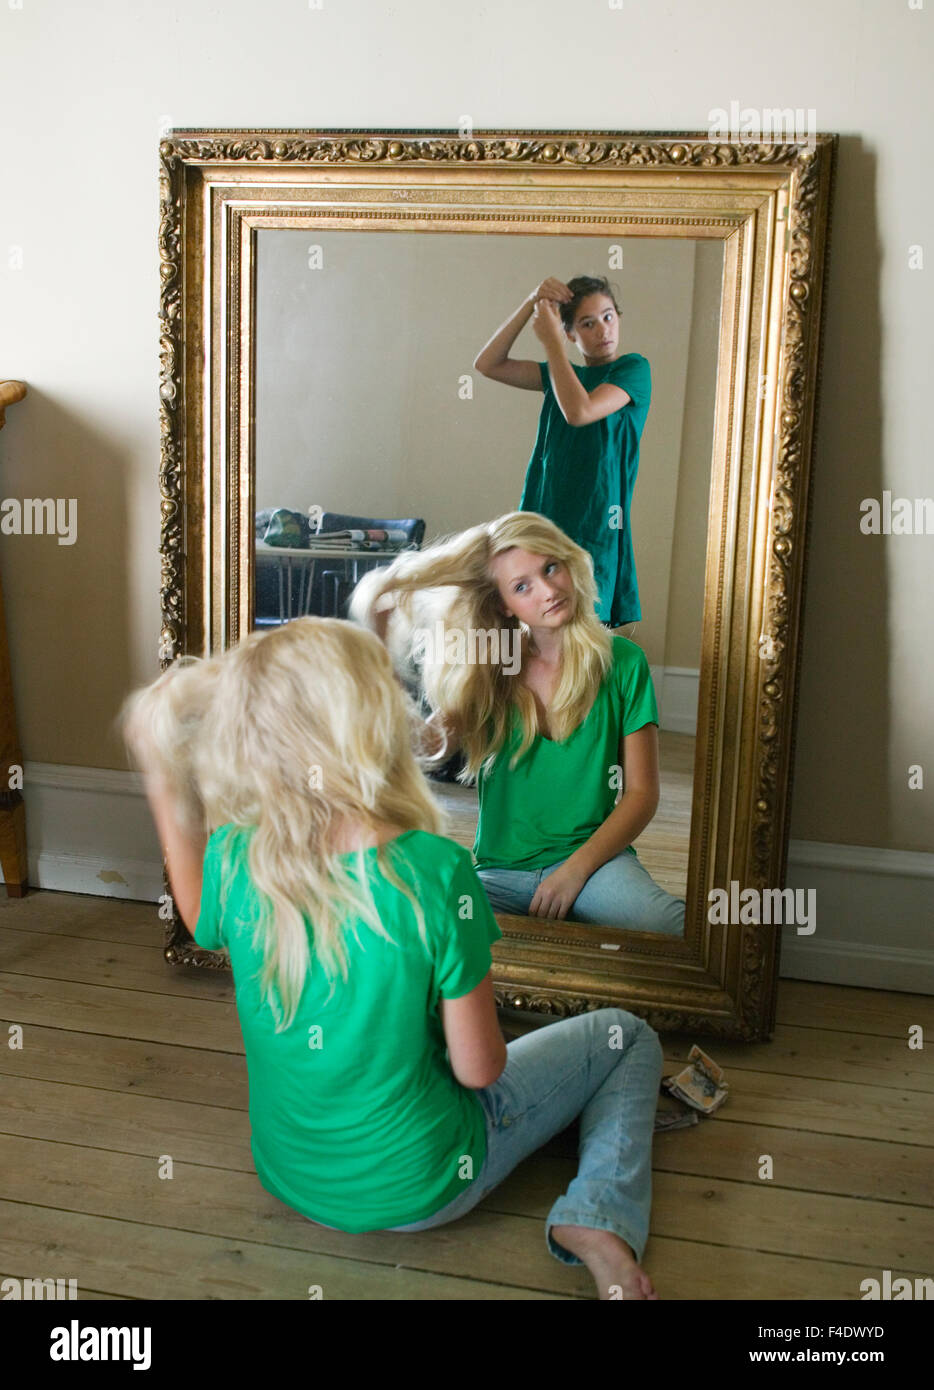 Teenge Girls In Front Of A Mirror Stock Photo 88816209 Alamy